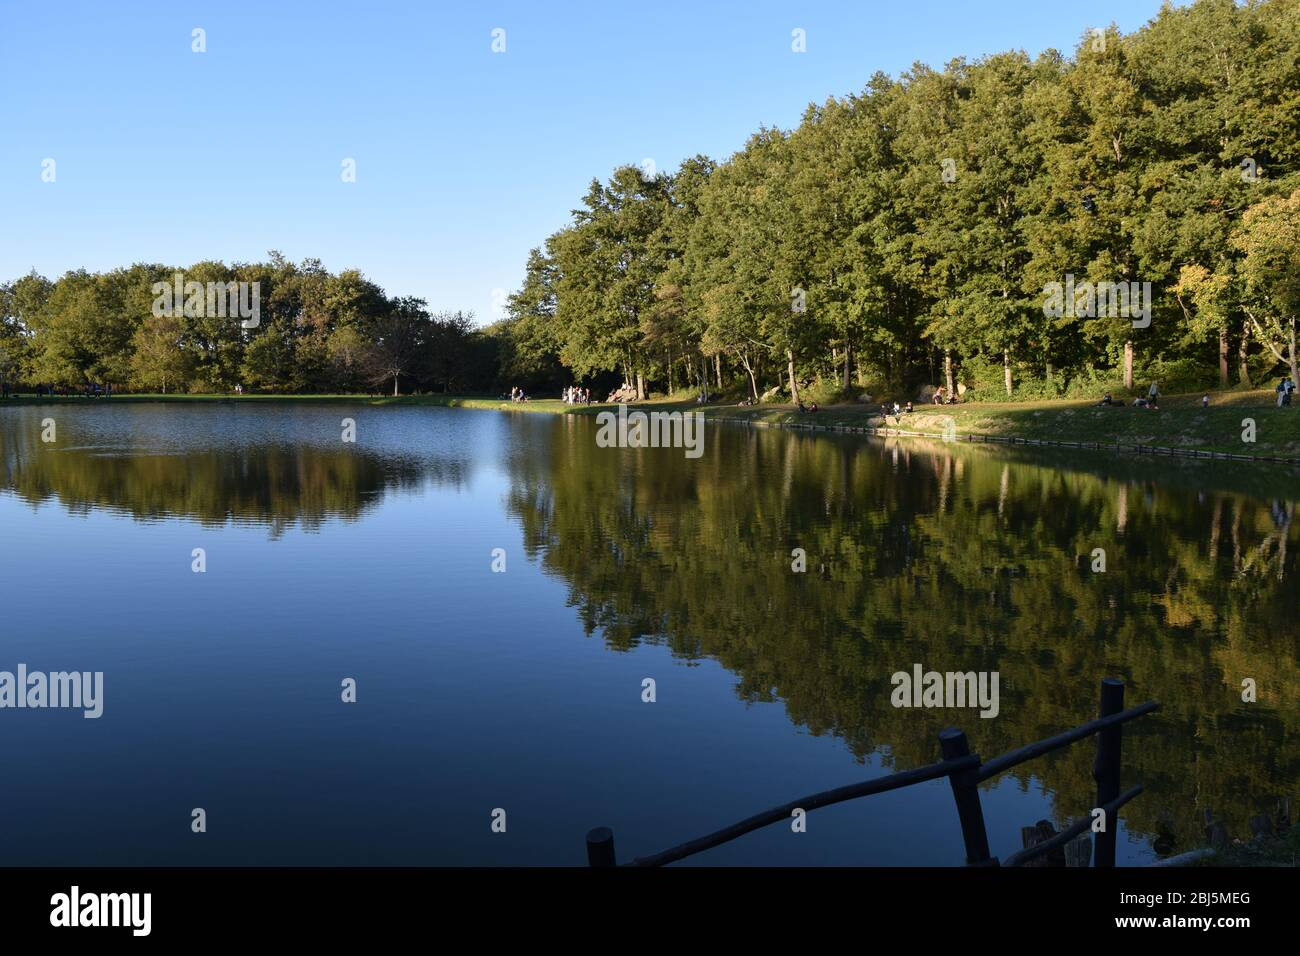 Trees perfectly reflected on placid blue water in a public park. Bagno di Romagna, Emilia Romagna, Italy Stock Photo